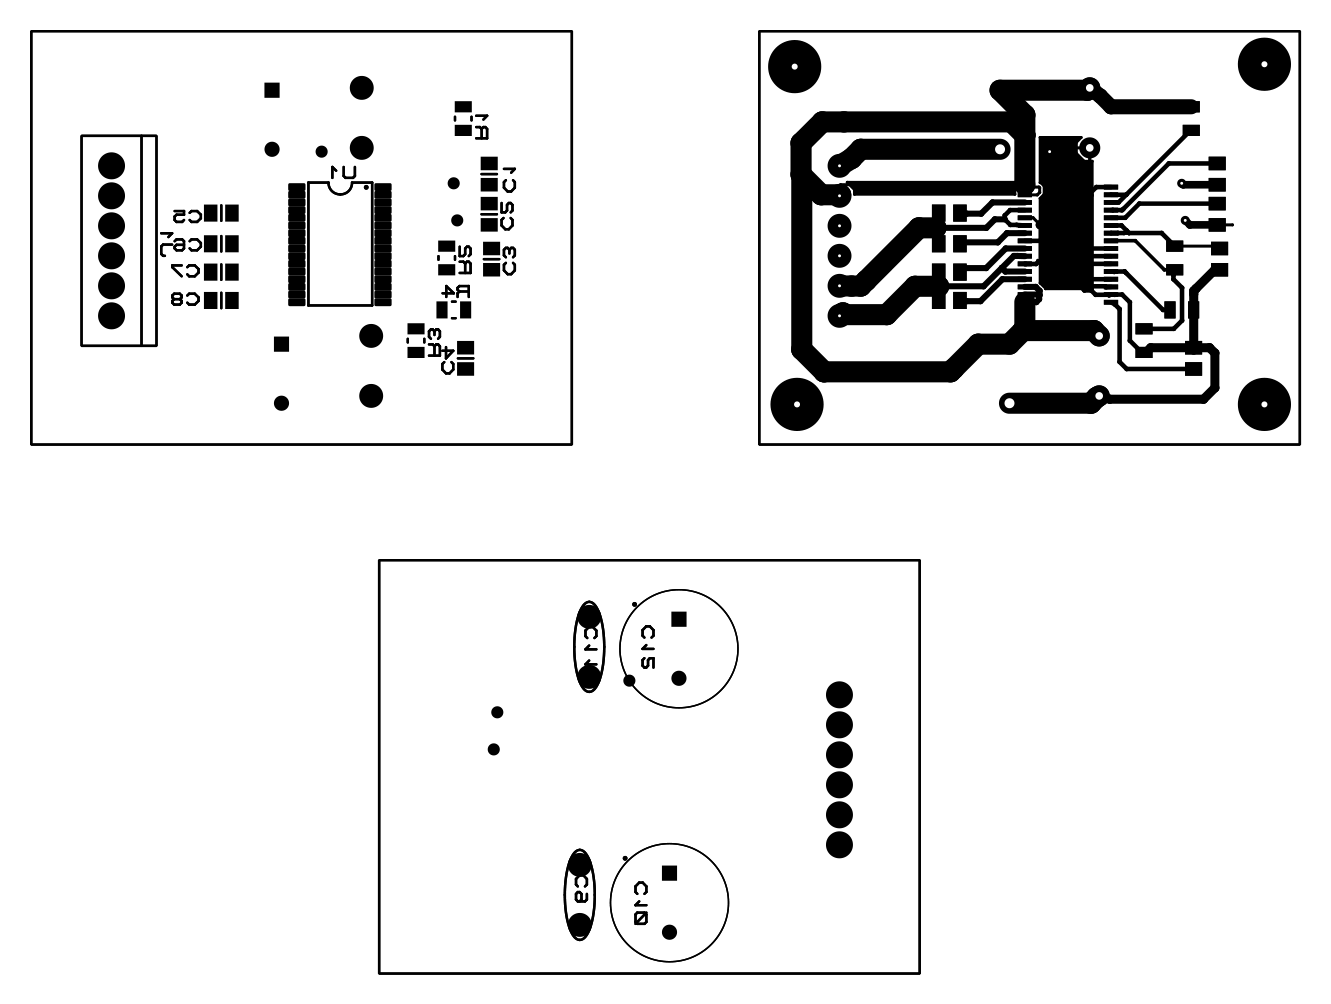 Tpa3116d2 Power Amplifier Class D Schematic Electronic Circuit 150w Lm3886 Pcb Layout Design 100w